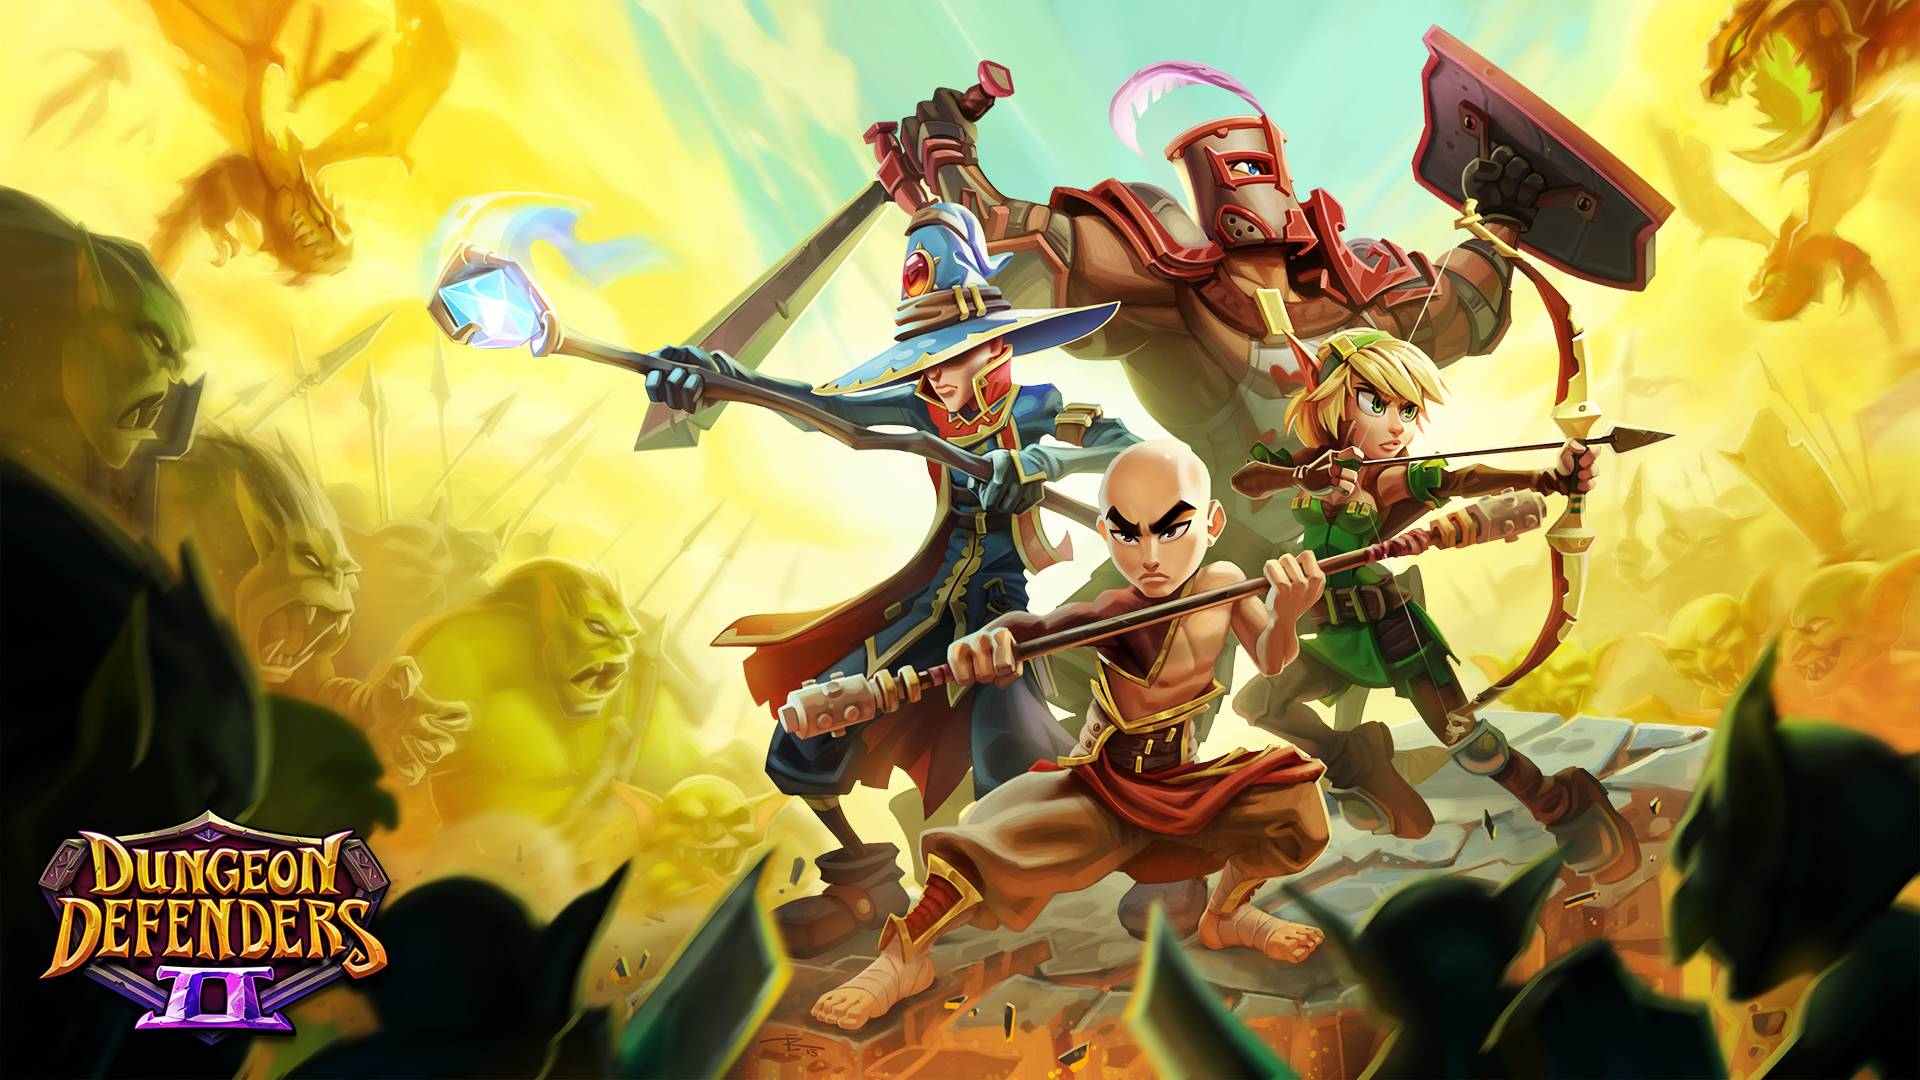 dungeon defenders 2 wallpaper